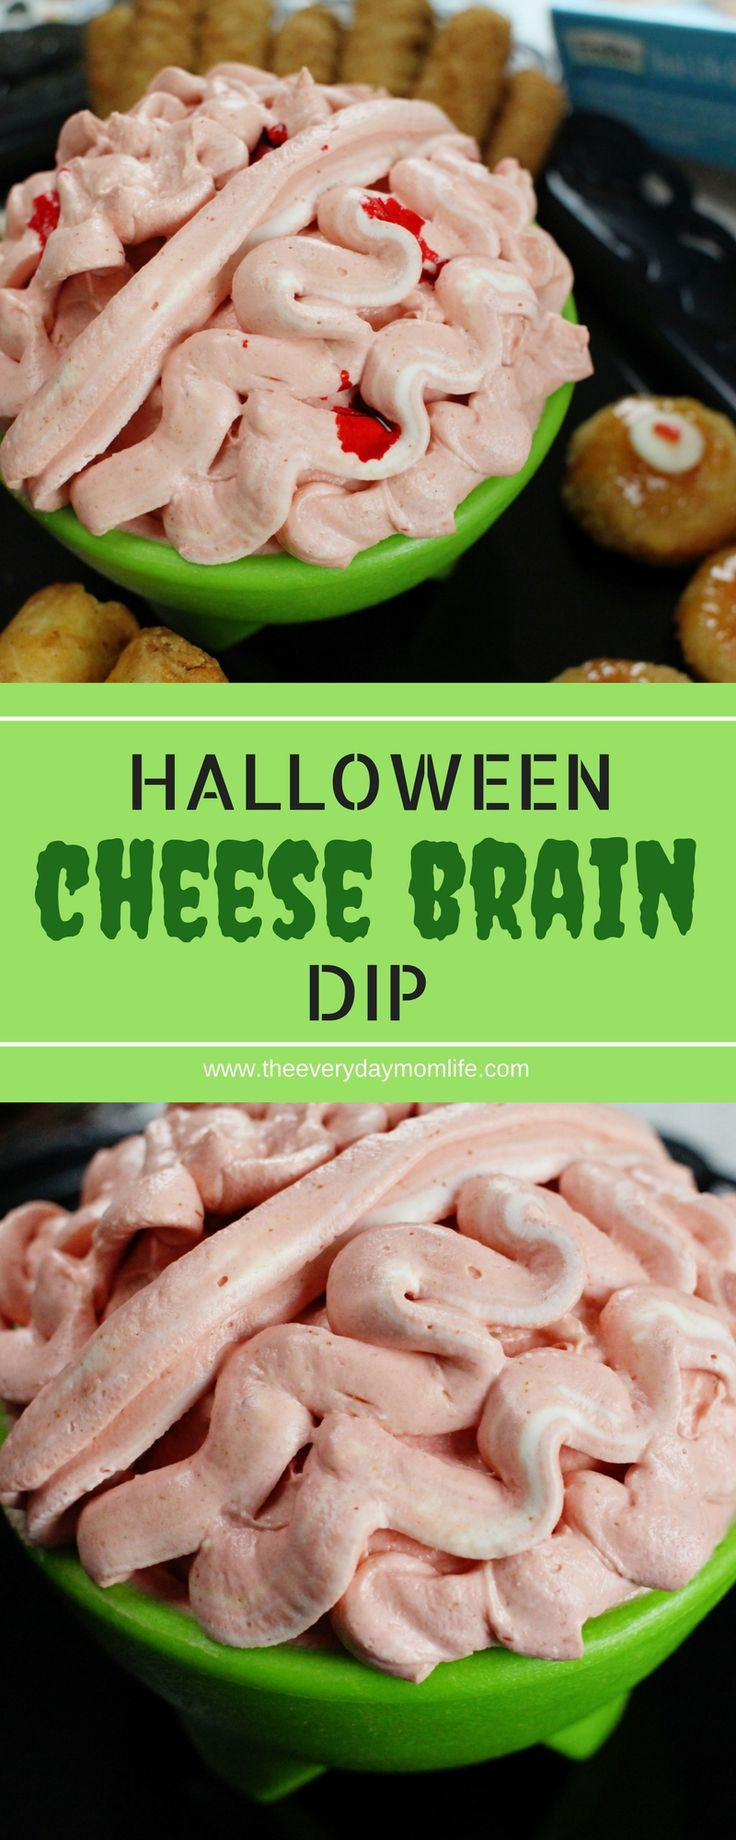 This creepy cheese brain Halloween dip recipe will give your guests a fright. Perfect for Halloween parties! #halloweenparty #Halloweendecor #recipeoftheday